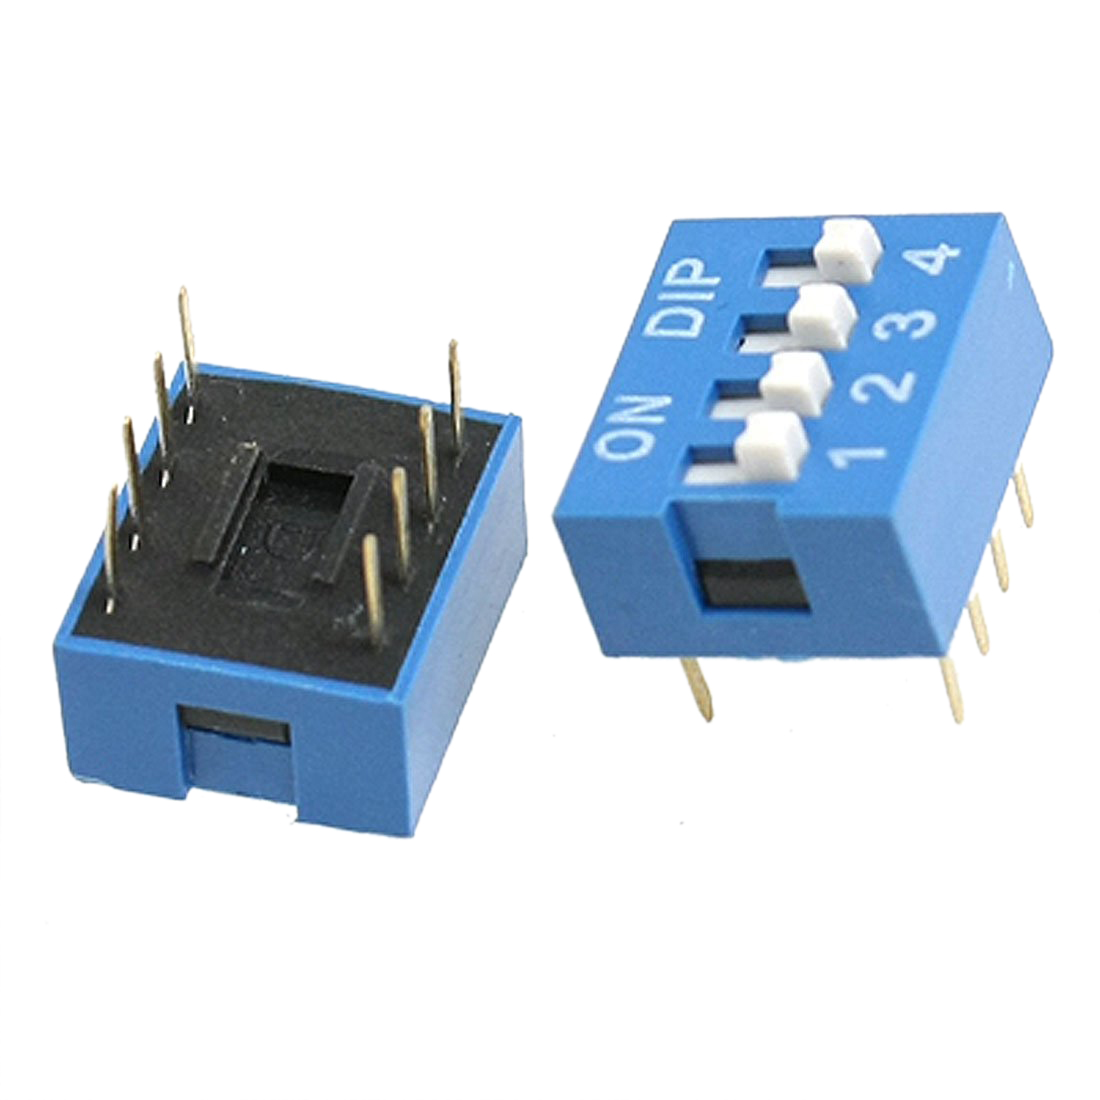 IMC Hot 10 Pcs 2 Row 8 Pin 4P Positions 2.54mm Pitch DIP Switch Blue